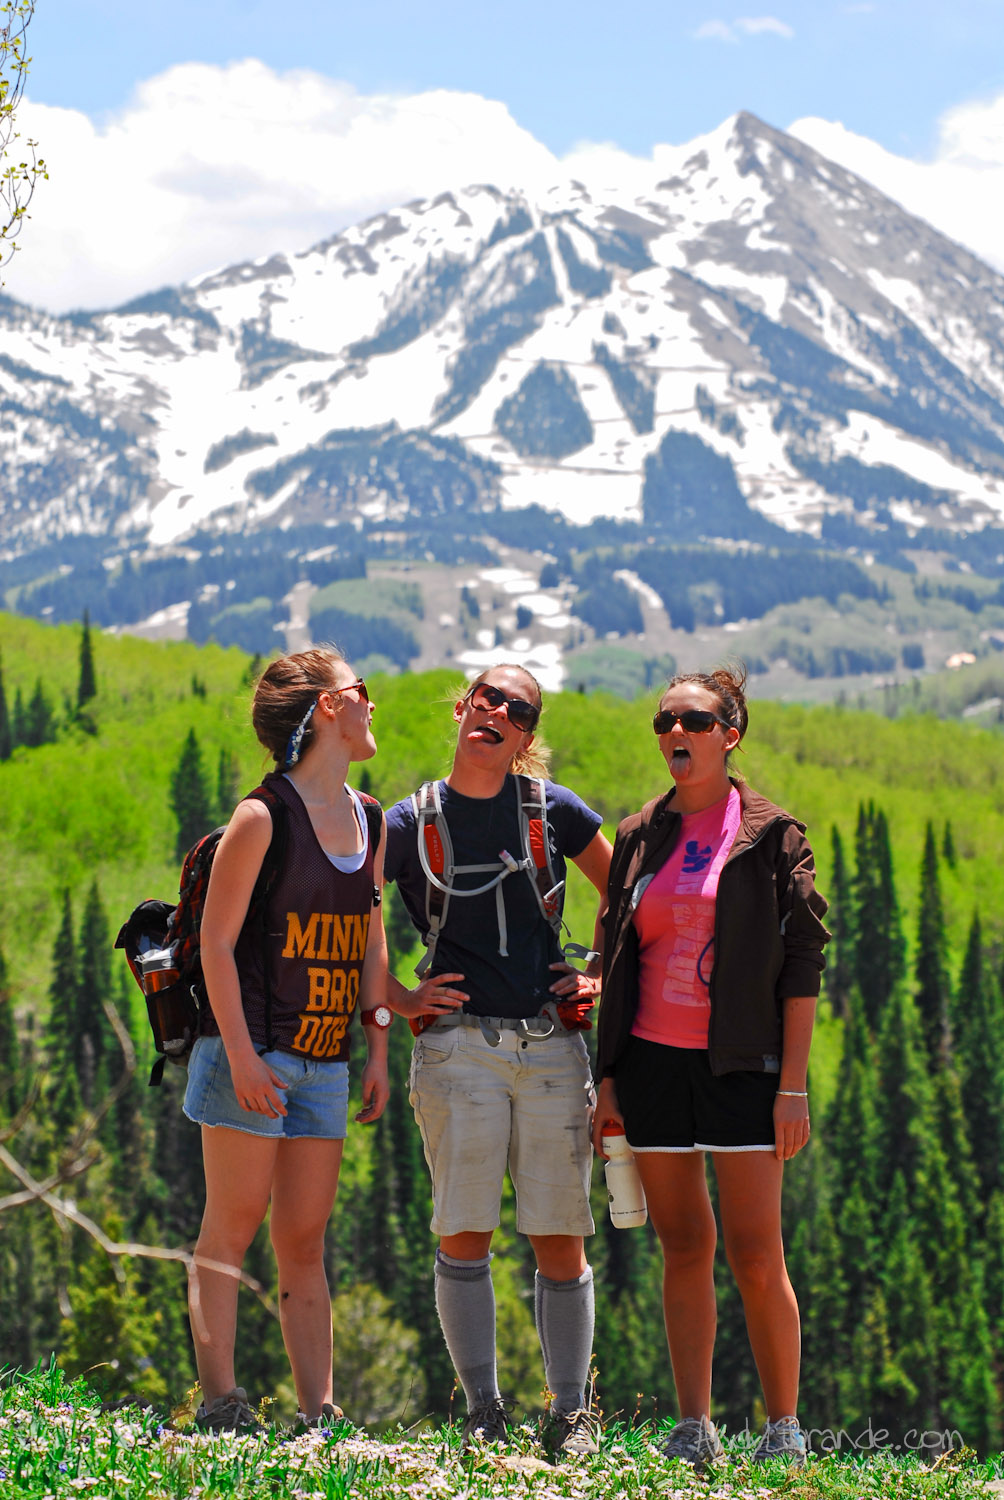 Judd Falls overlook of Mt Crested Butte